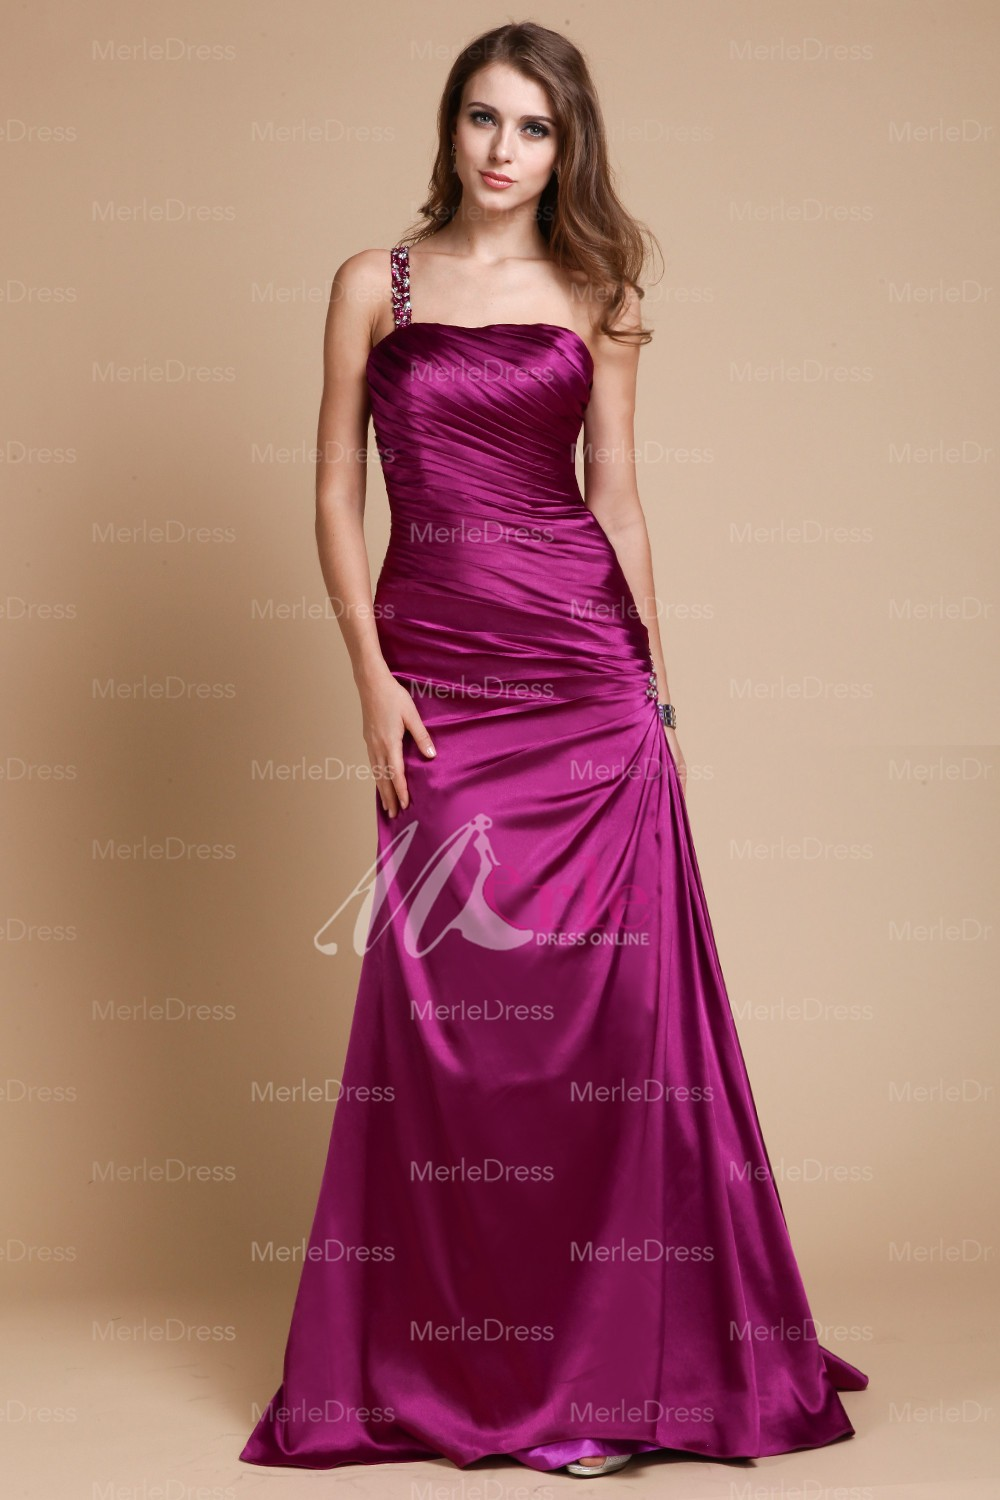 Satin dresses – Satin dresses for girls help the person to attain ...